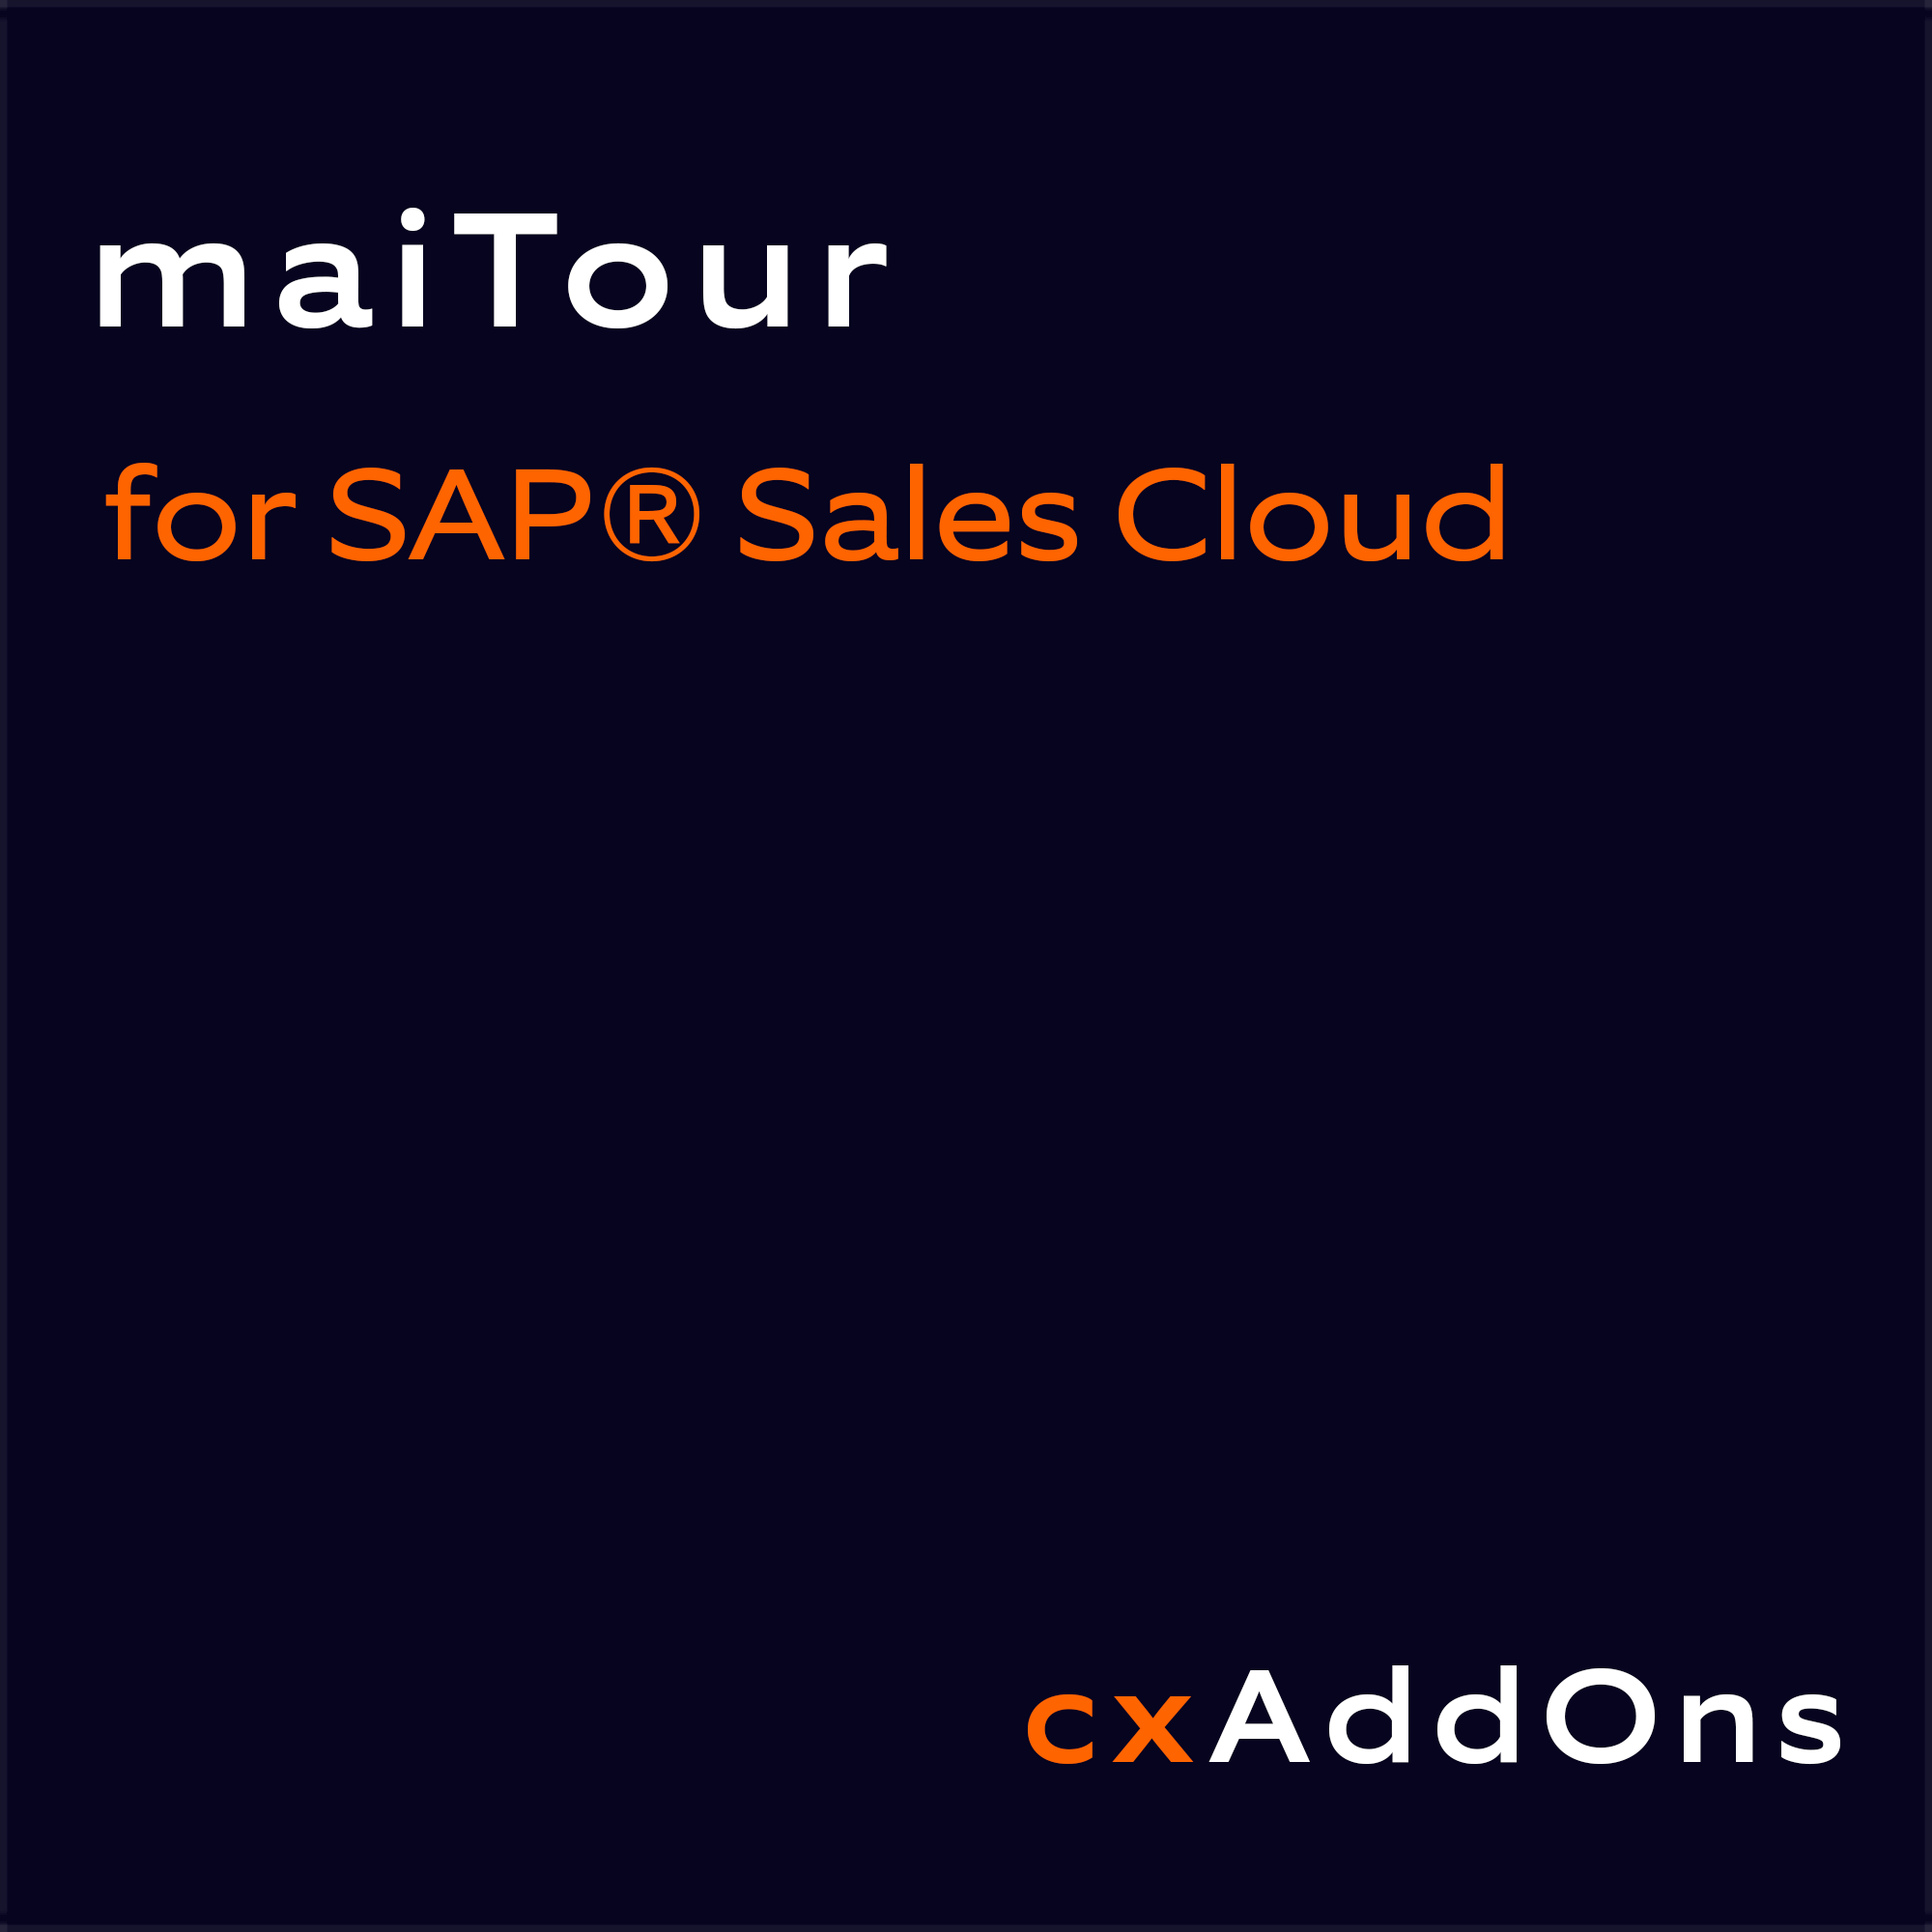 Nagarro ES maiTour for SAP Sales Cloud